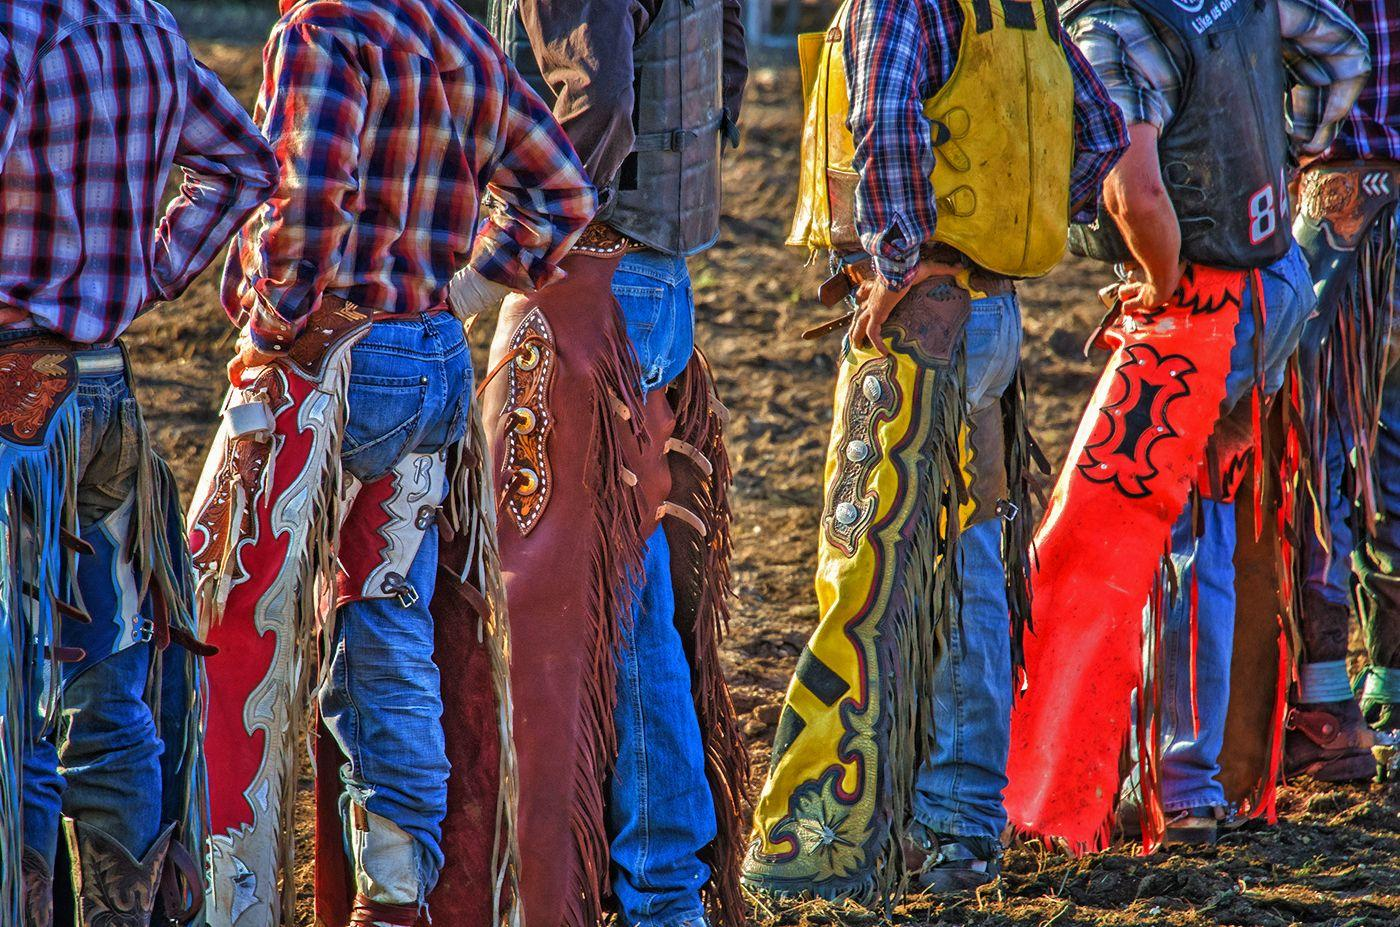 Chaps Rock Springs - Cowboys lined up, colorful fringe chaps & blue jeans